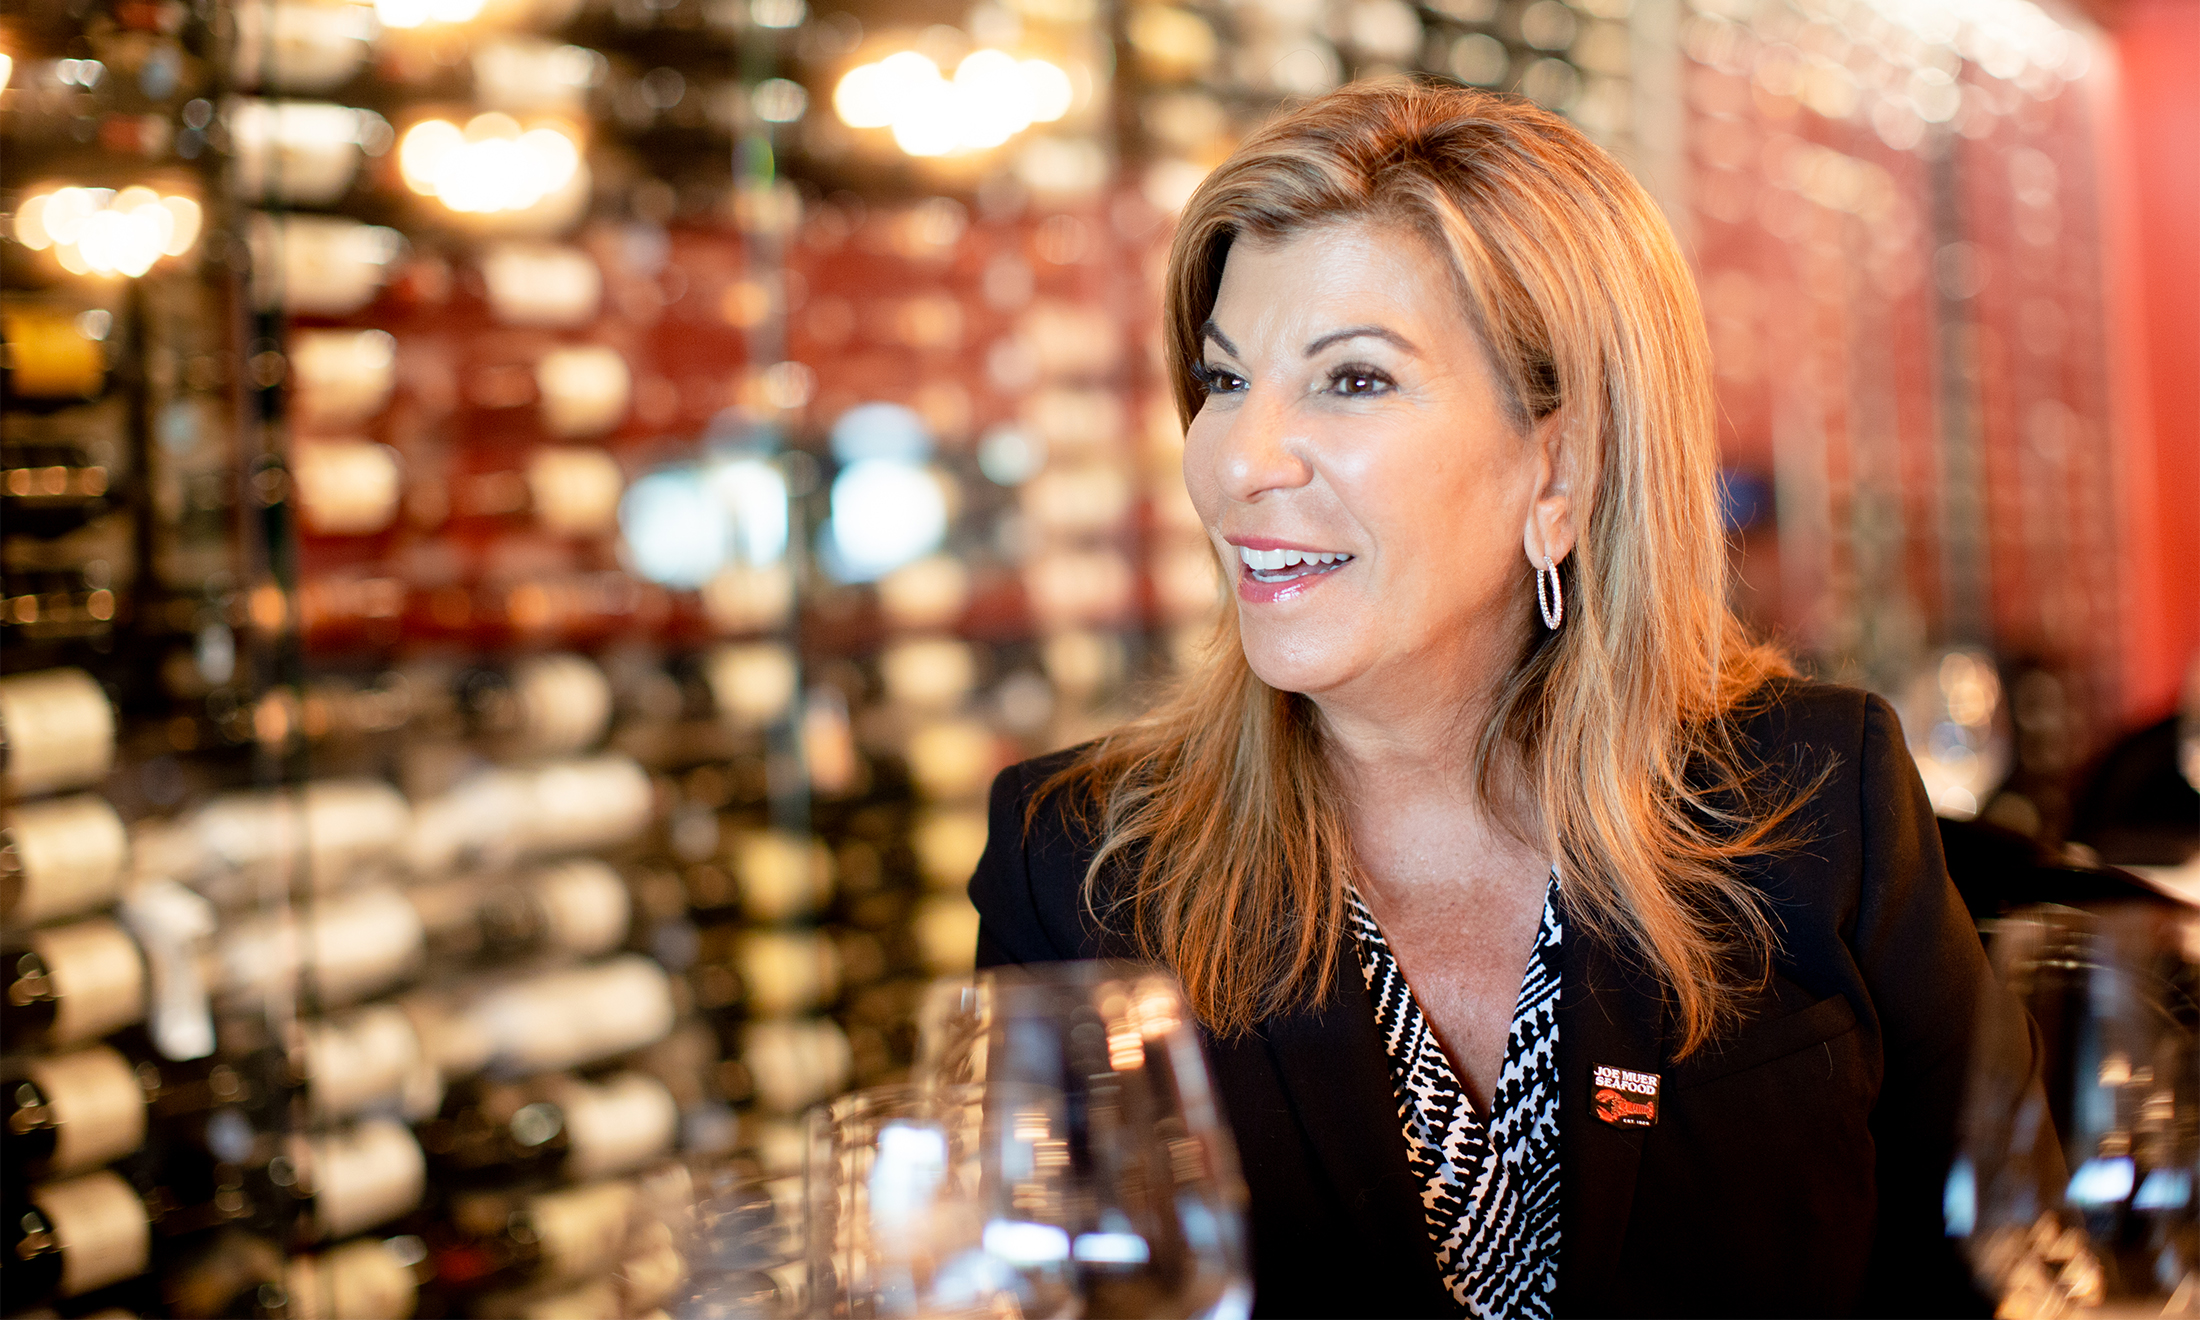 OU alumna Rosalie Vicari shares her journey from educator to COO of state's largest independent restaurant group